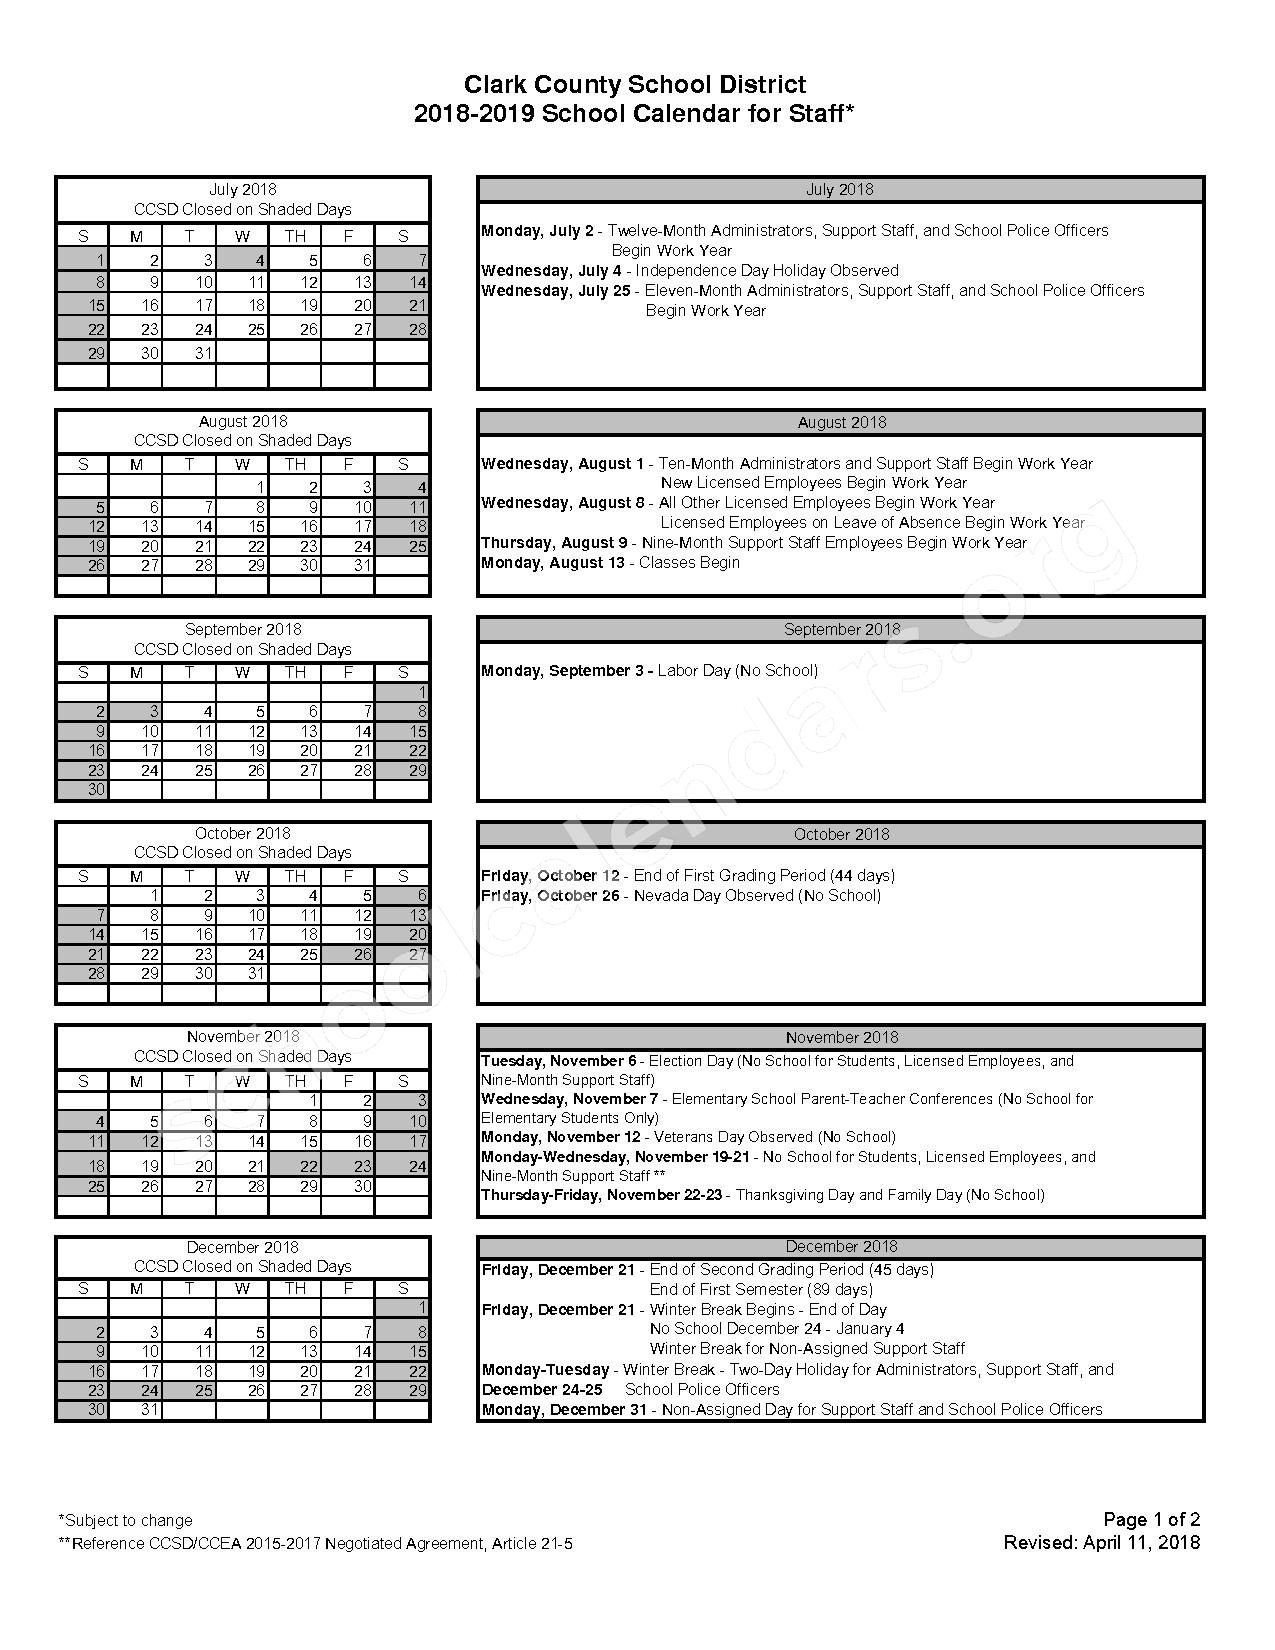 2018 - 2019 School Calendar for Staff – Clark County School District – page 1